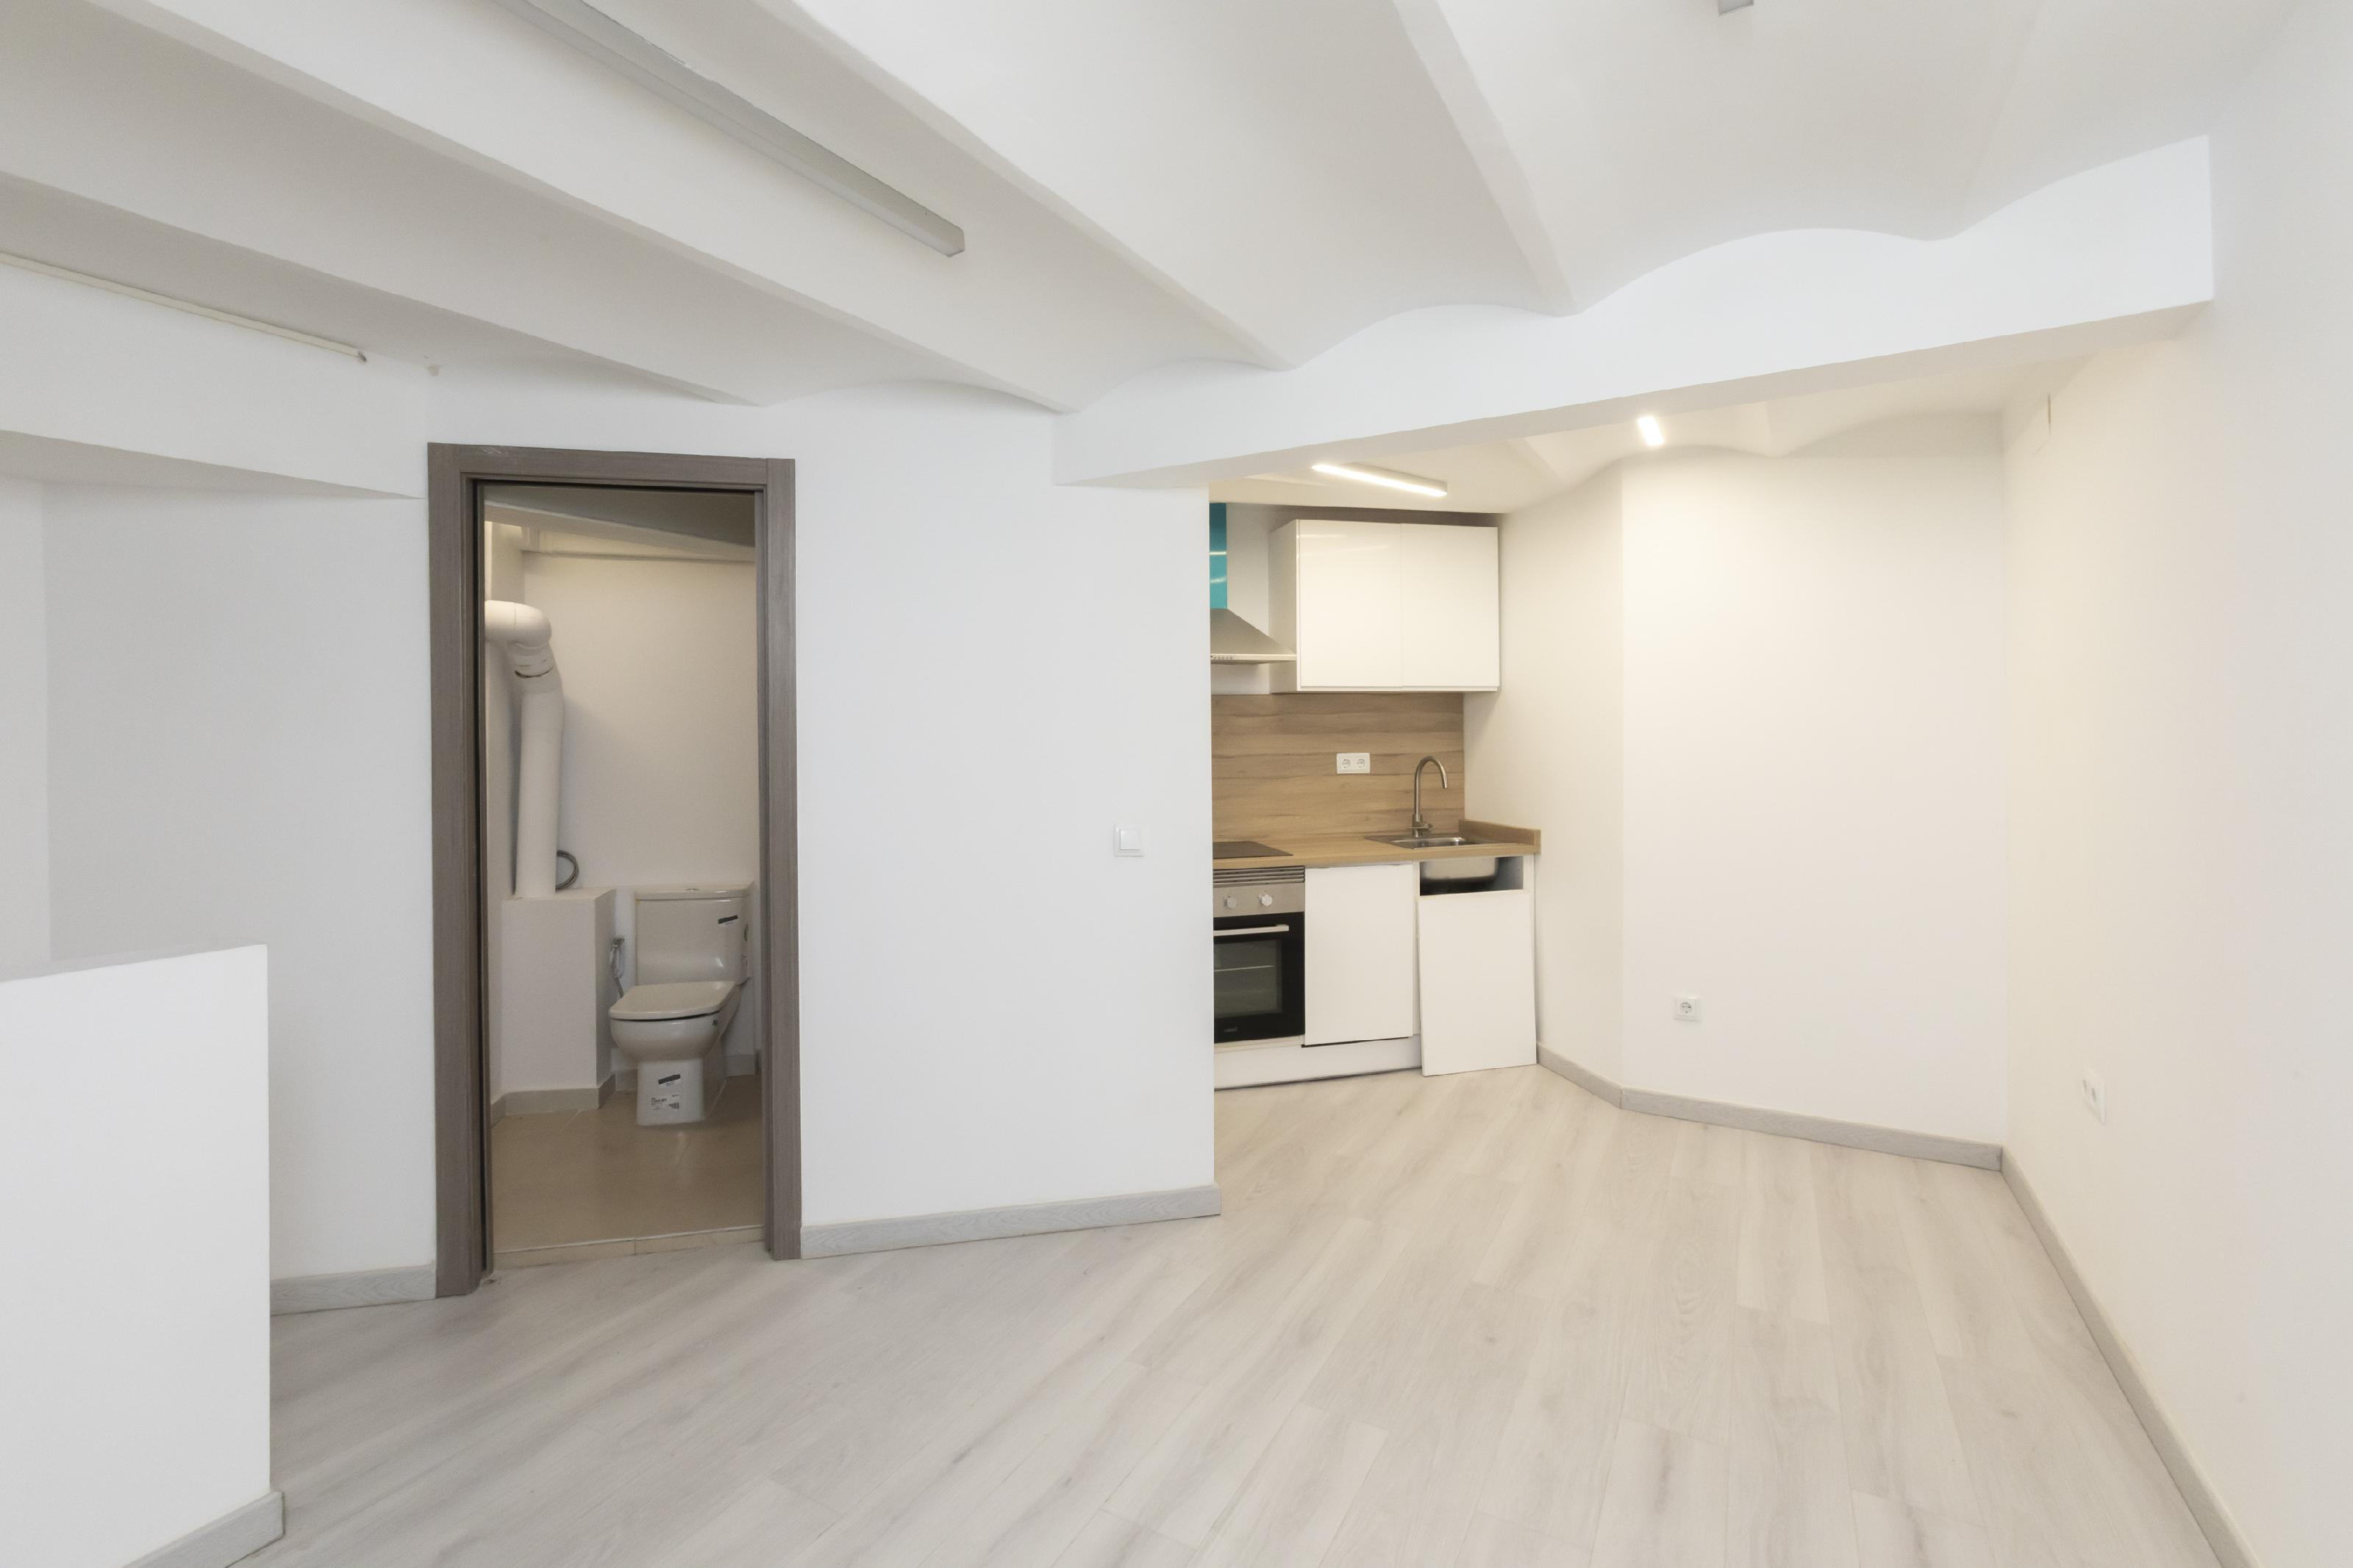 242978 Flat for sale in Gràcia, Camp Grassot and Gràcia Nova 21